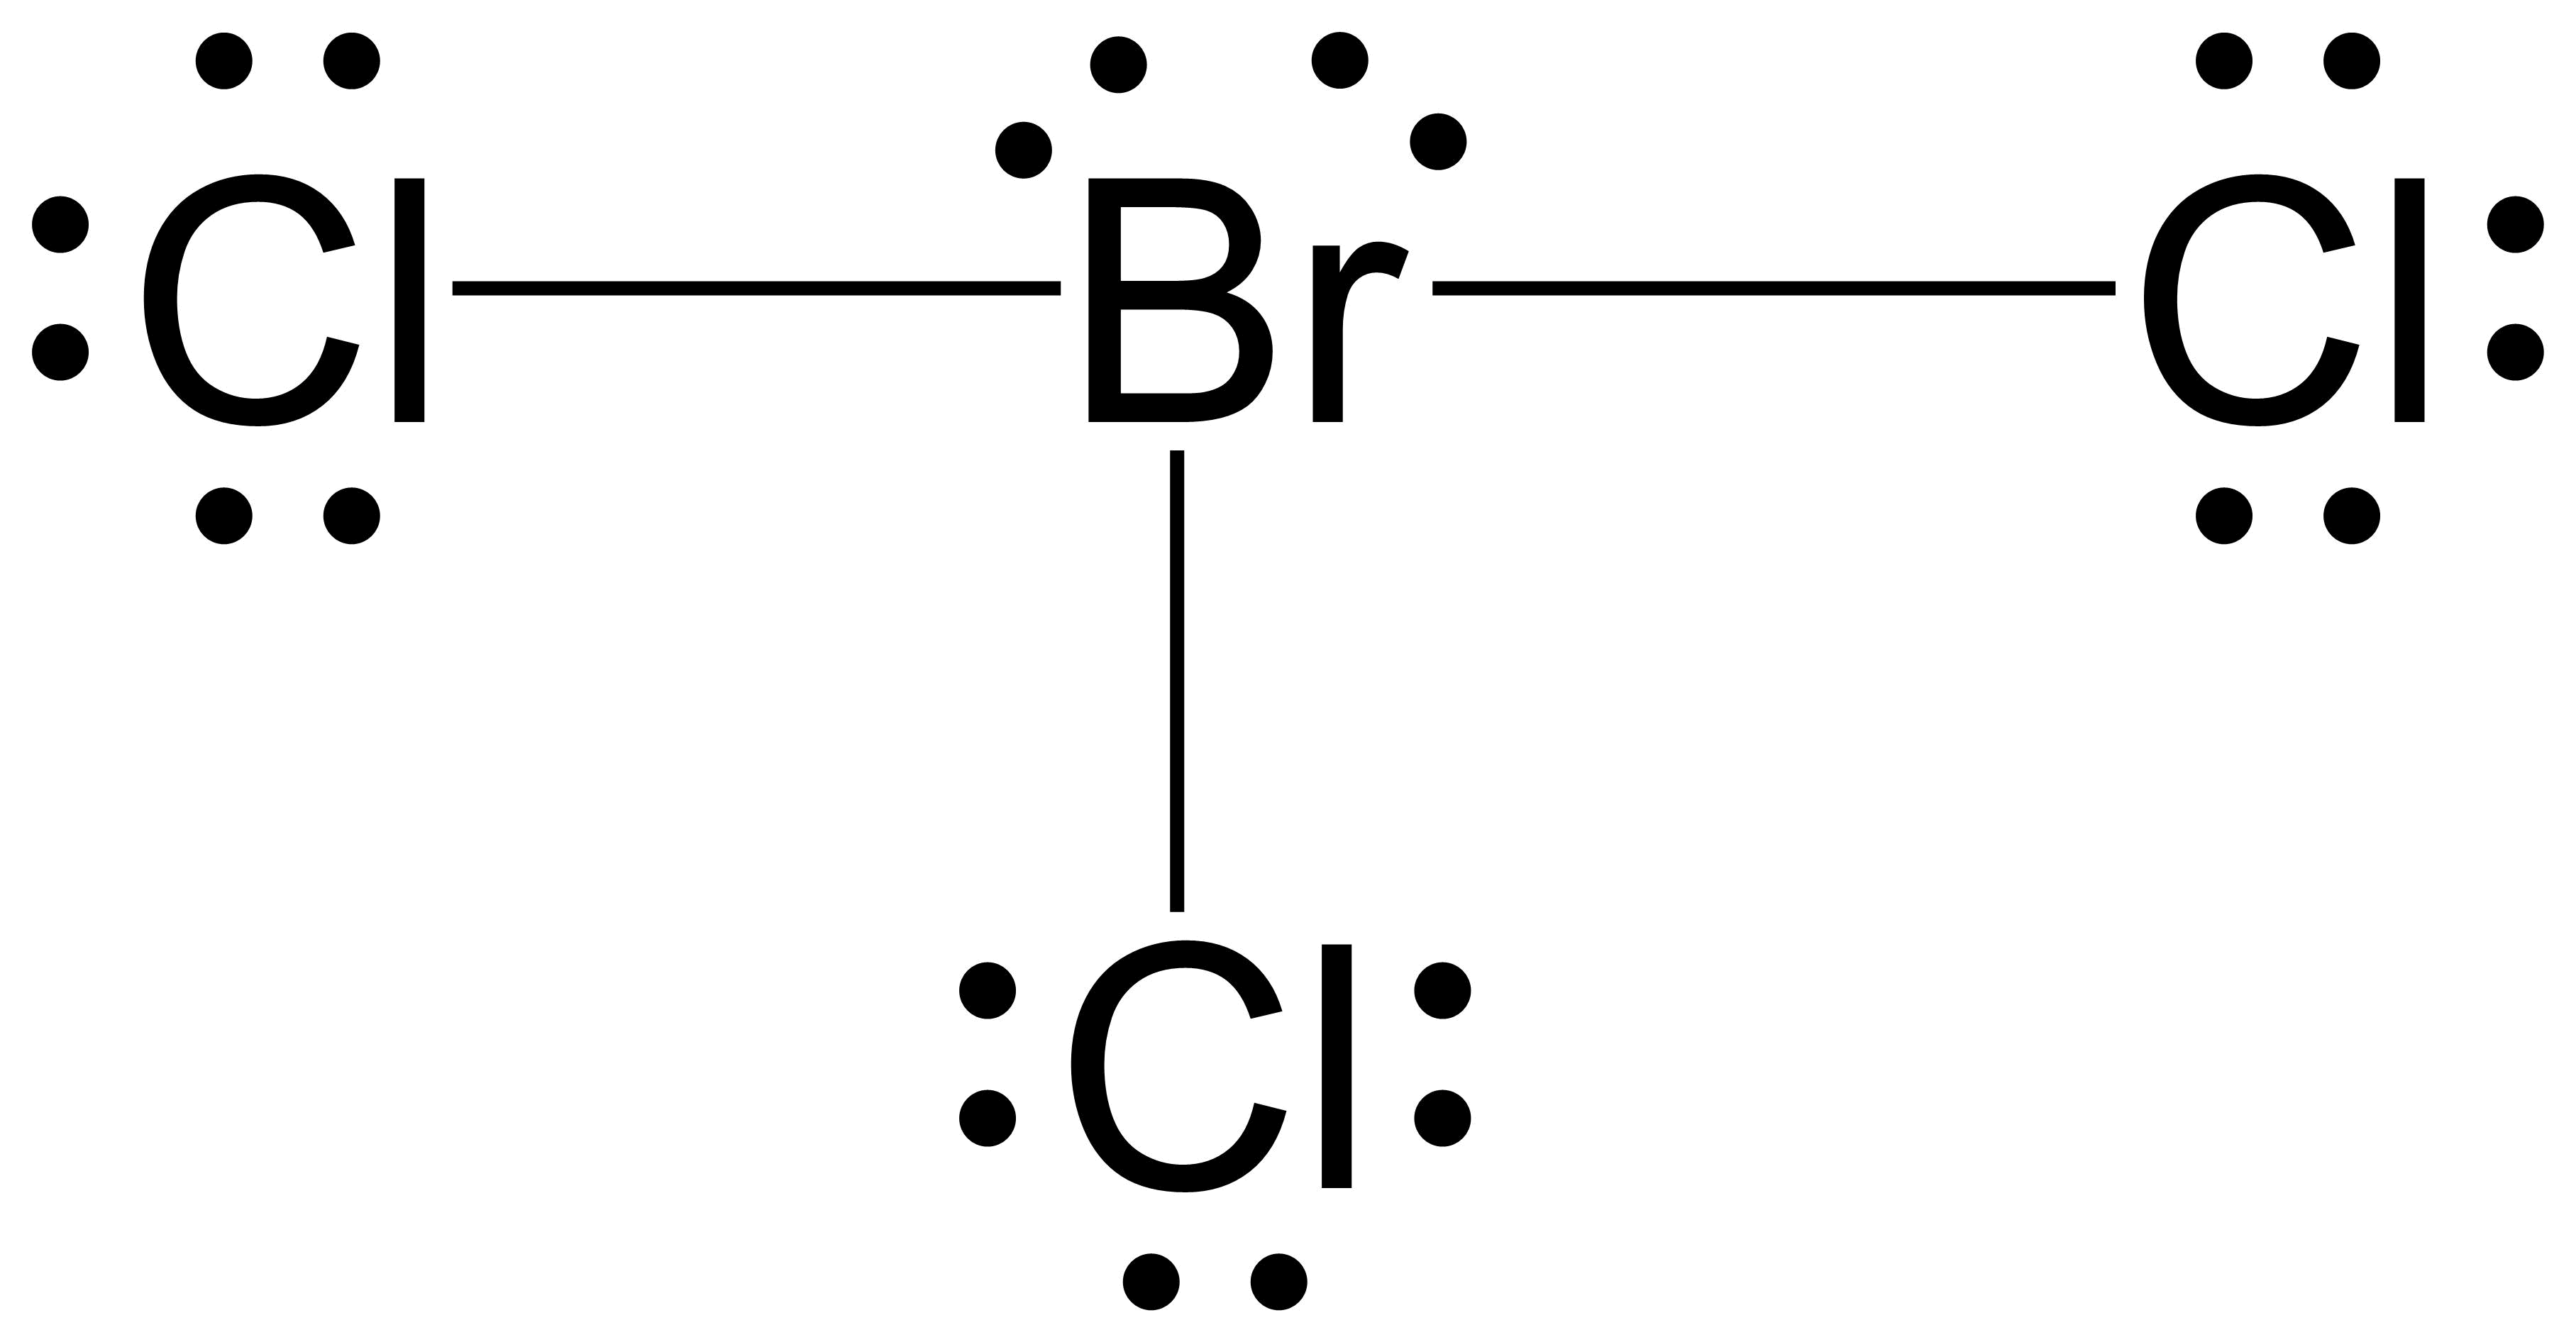 Lewis structure for BrCl3 with the central bromine atom single bonded to three chlorine atoms. The central bromine has two lone pairs, and the chlorine atoms have three.